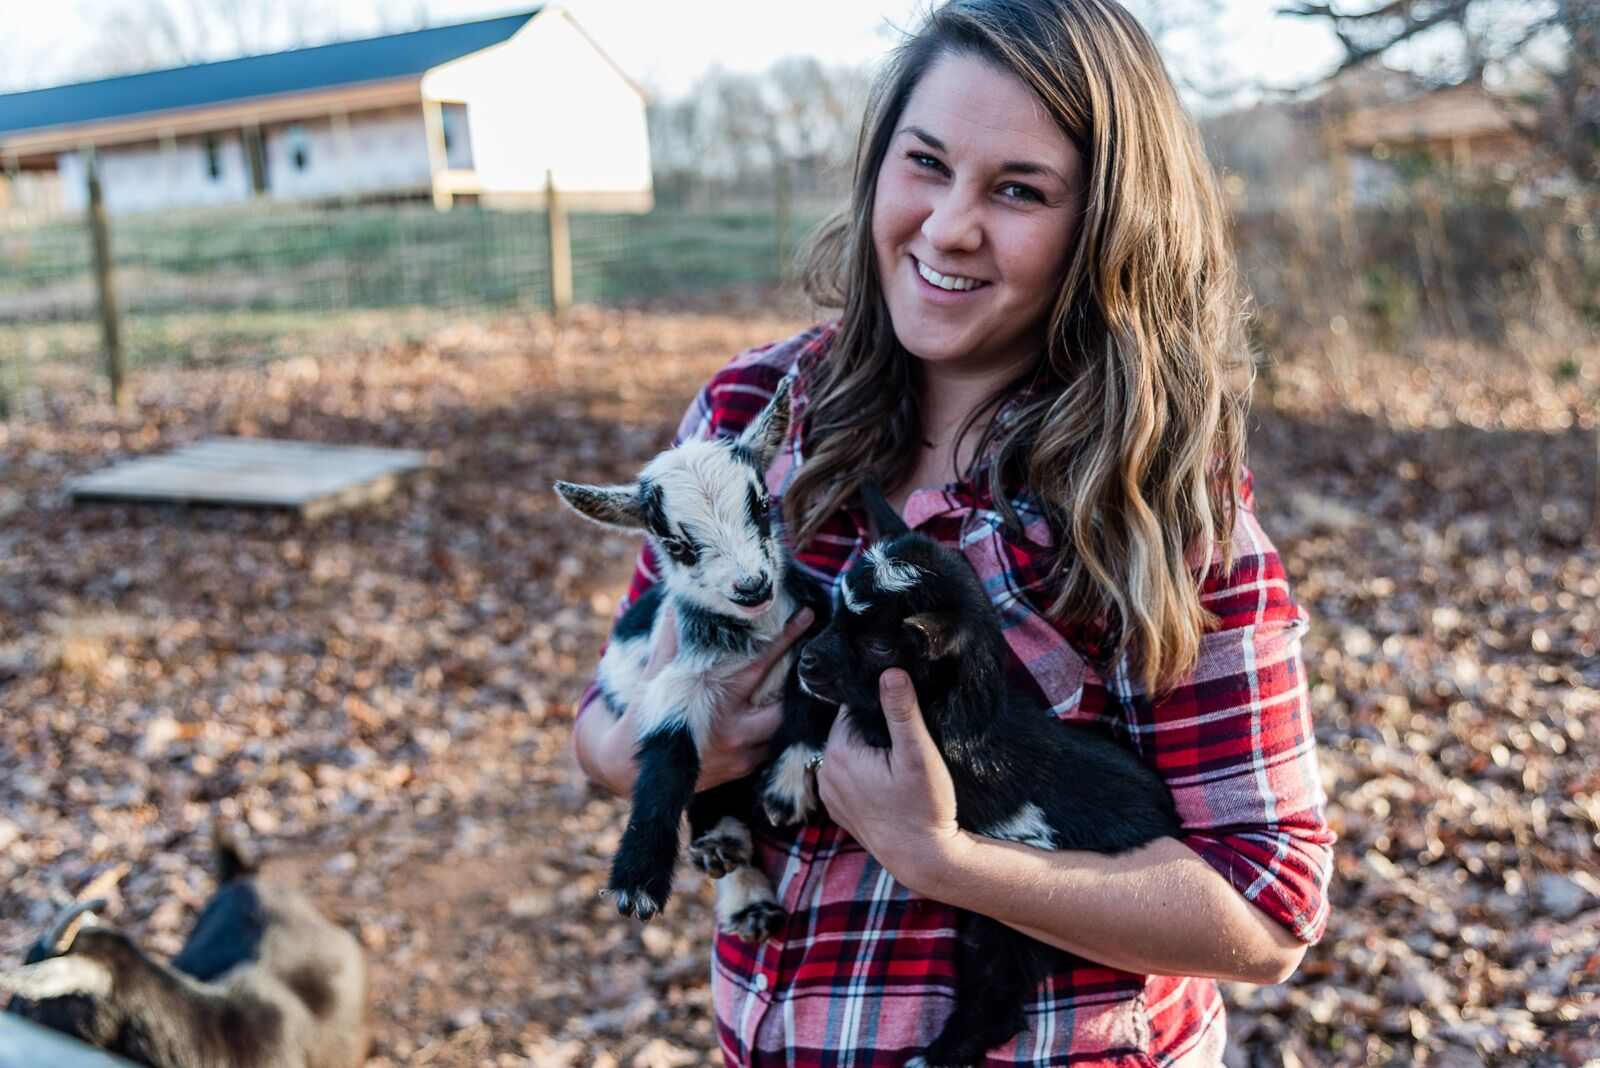 Jess and Goats.JPG